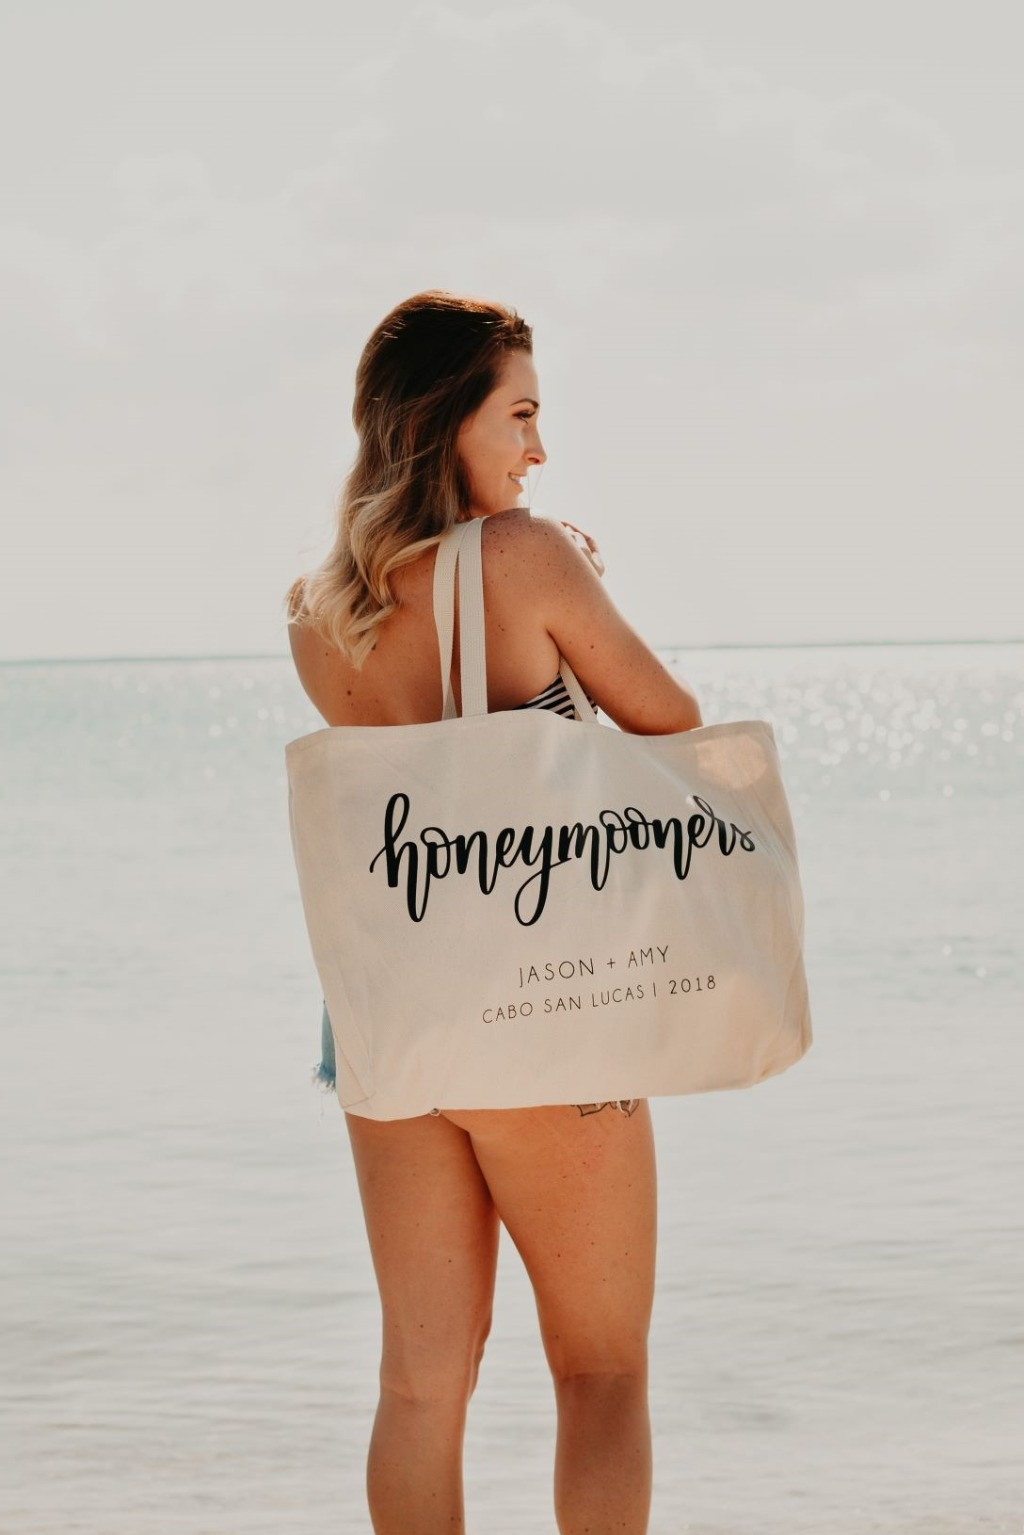 This large, lightweight canvas tote bag is perfect for toting around the beach essentials on your honeymoon! More designs available